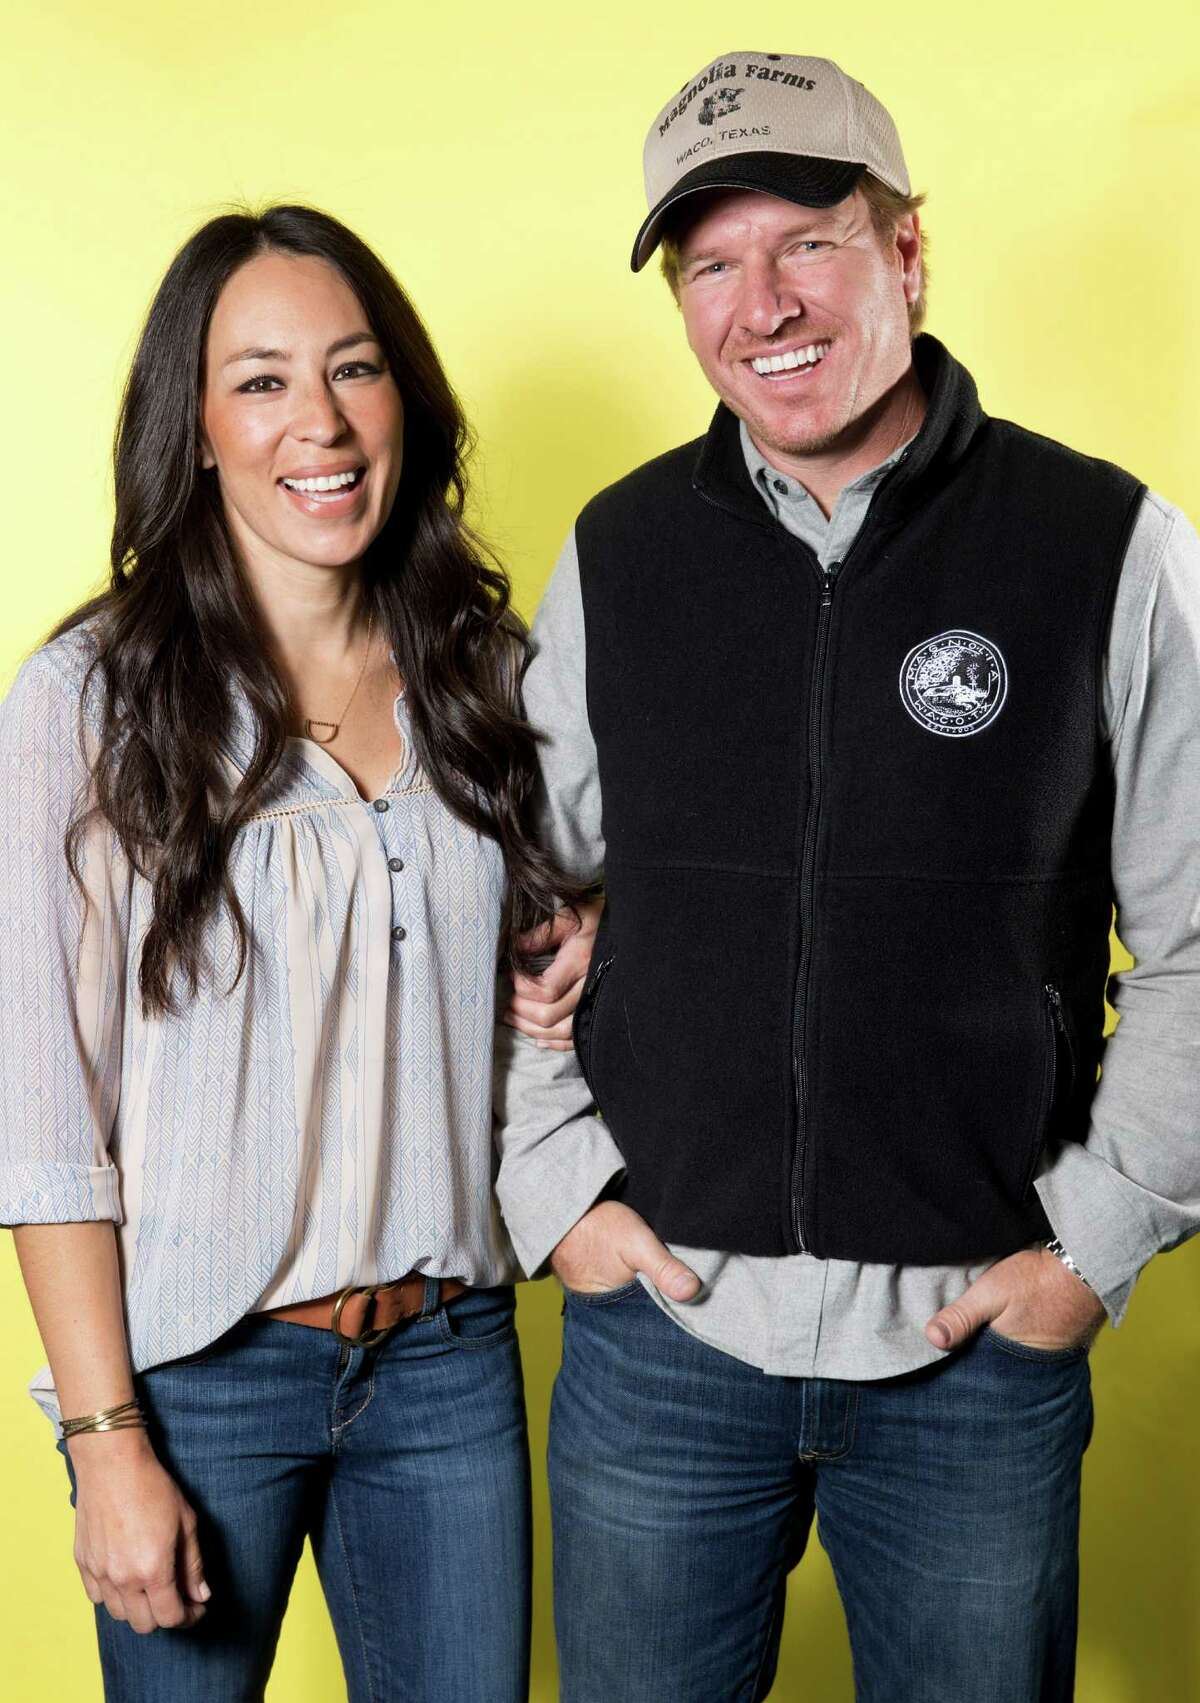 """PHOTOS: Take a virtual tour of Chip & Joanna Gaines' Magnolia Market at the Silos ... Joanna Gaines, left, and Chip Gaines pose for a portrait in New York on March 29, 2016, to promote their home improvement show, """"Fixer Upper,"""" on HGTV."""